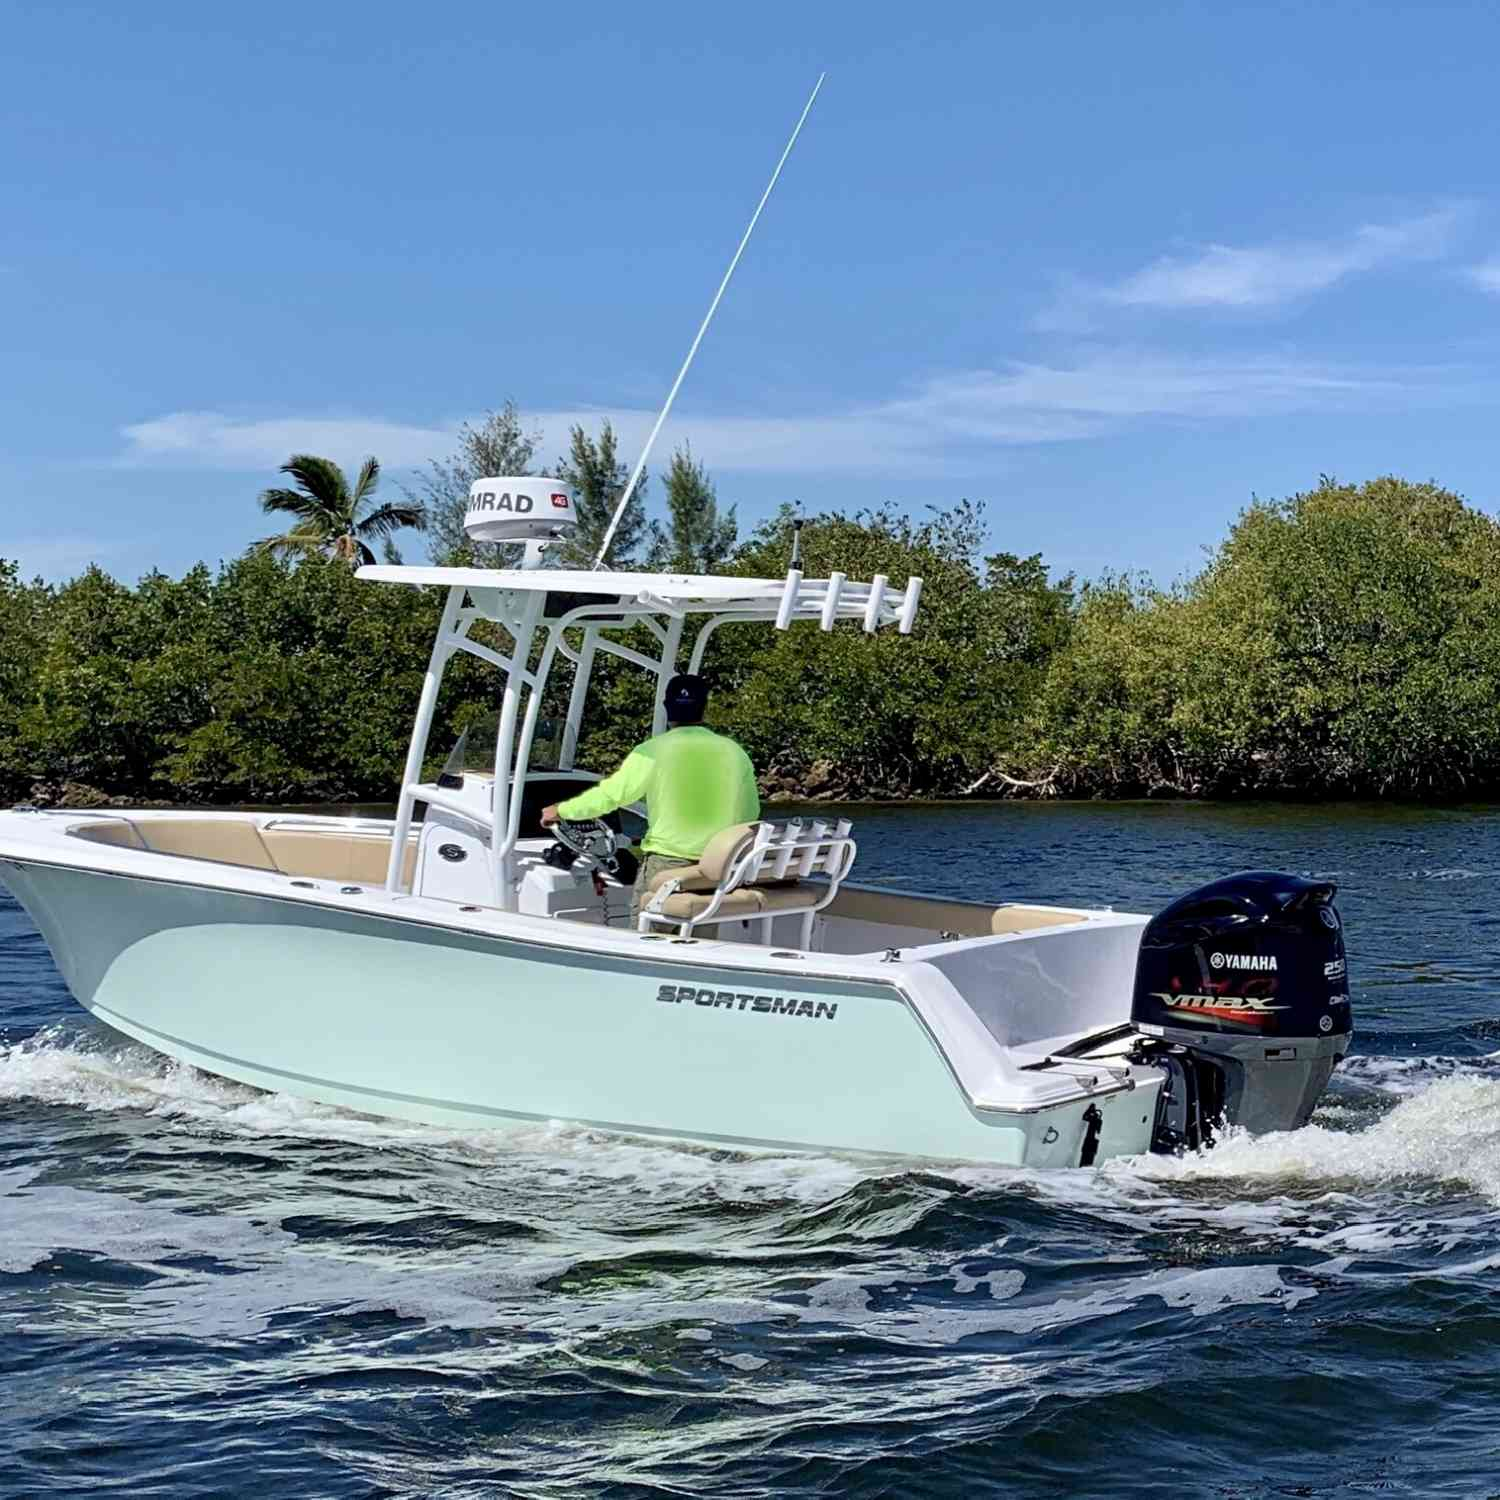 Title: Bald Eagle Sighting - On board their Sportsman Heritage 231 Center Console - Location: Sanibel, Florida. Participating in the Photo Contest #SportsmanMarch2020